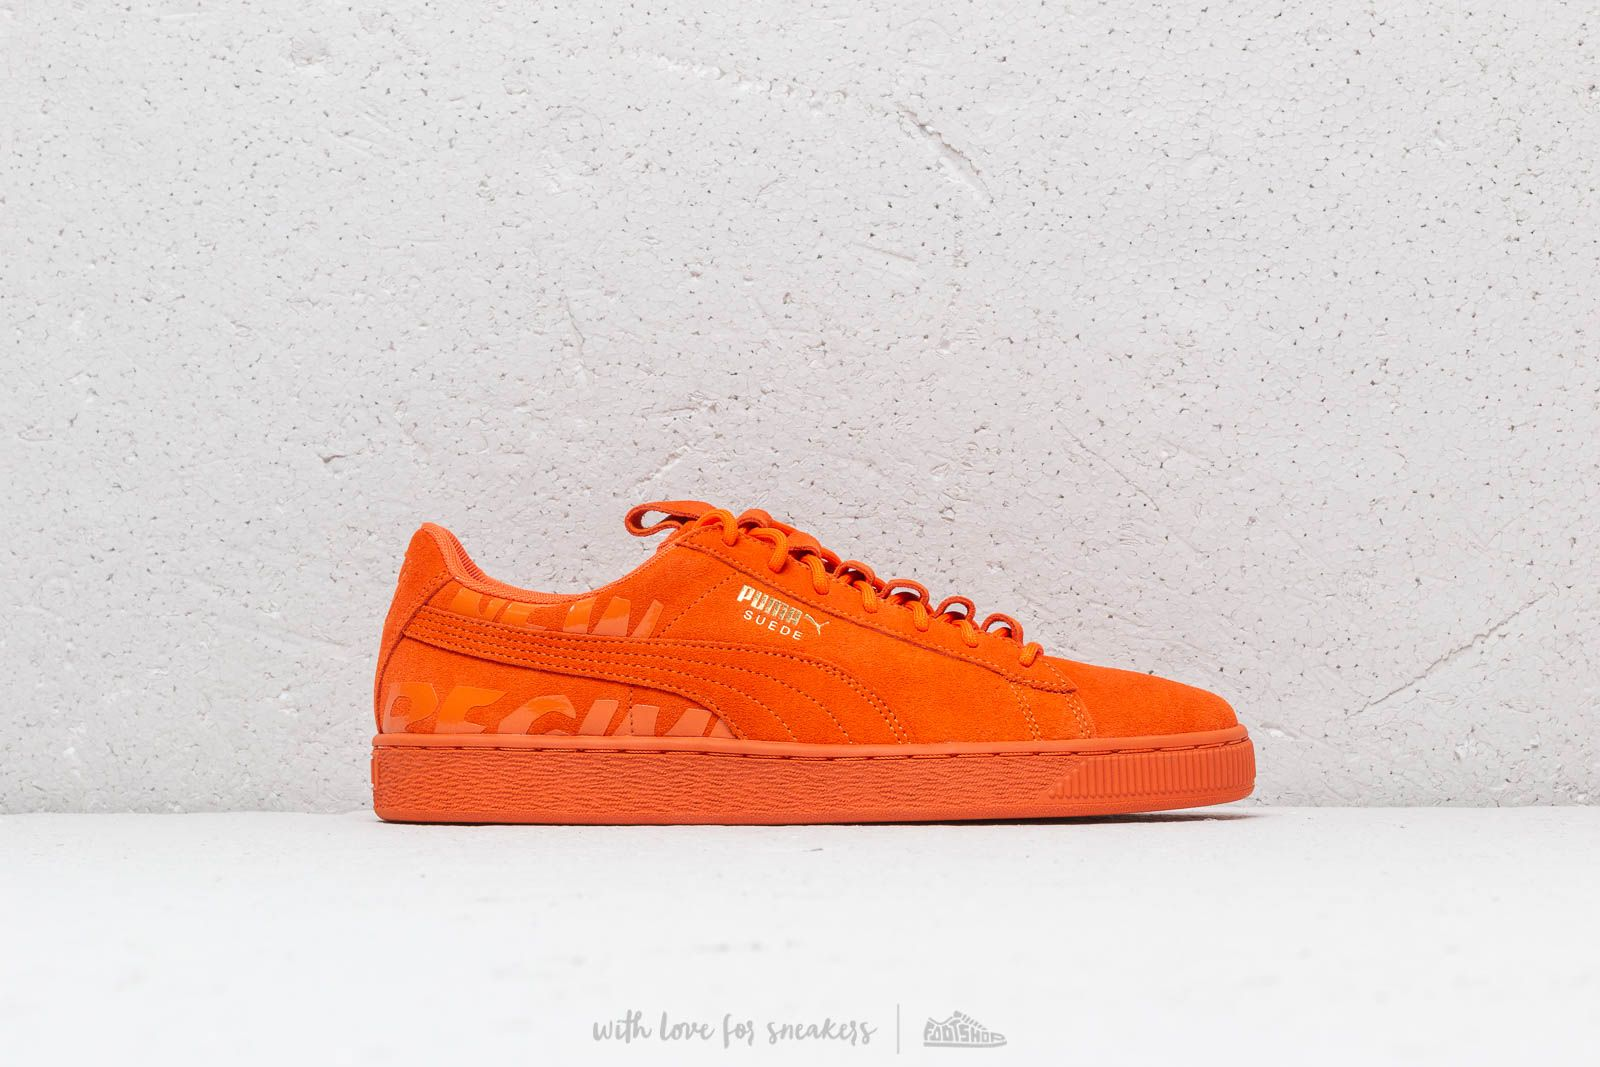 afc48b08d6a Puma x Atelier New Regime Suede Scarlet Ibis  Scarlet Ibis at a great price  110